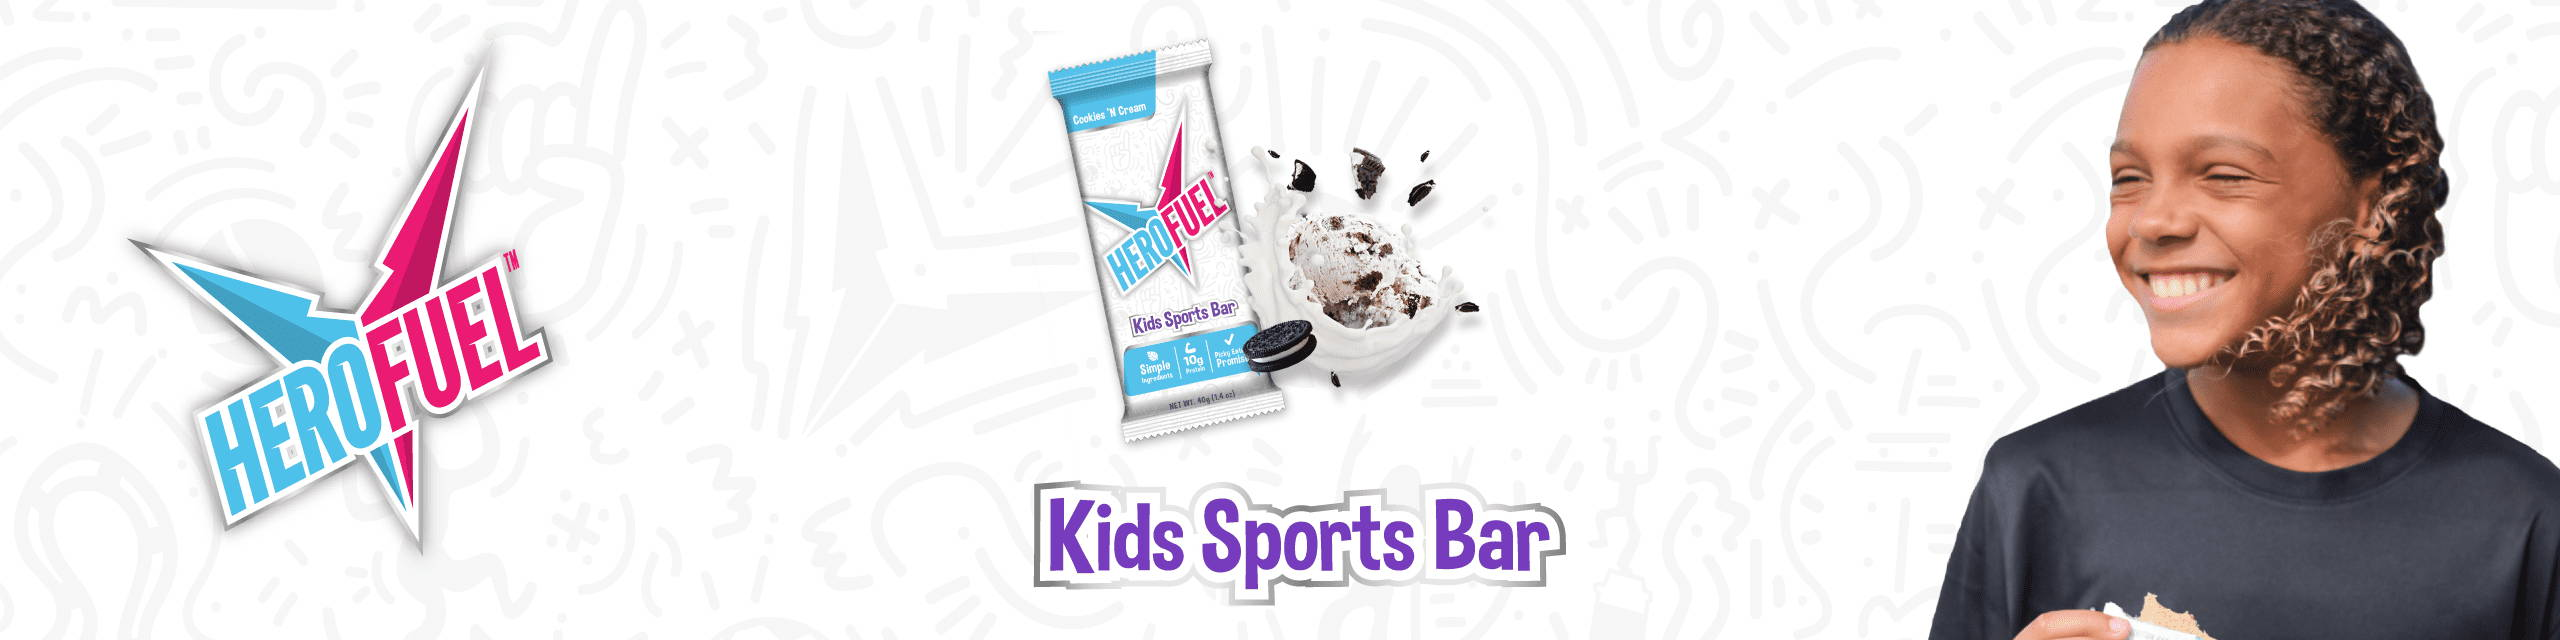 Herofuel- Kids Sports Bar